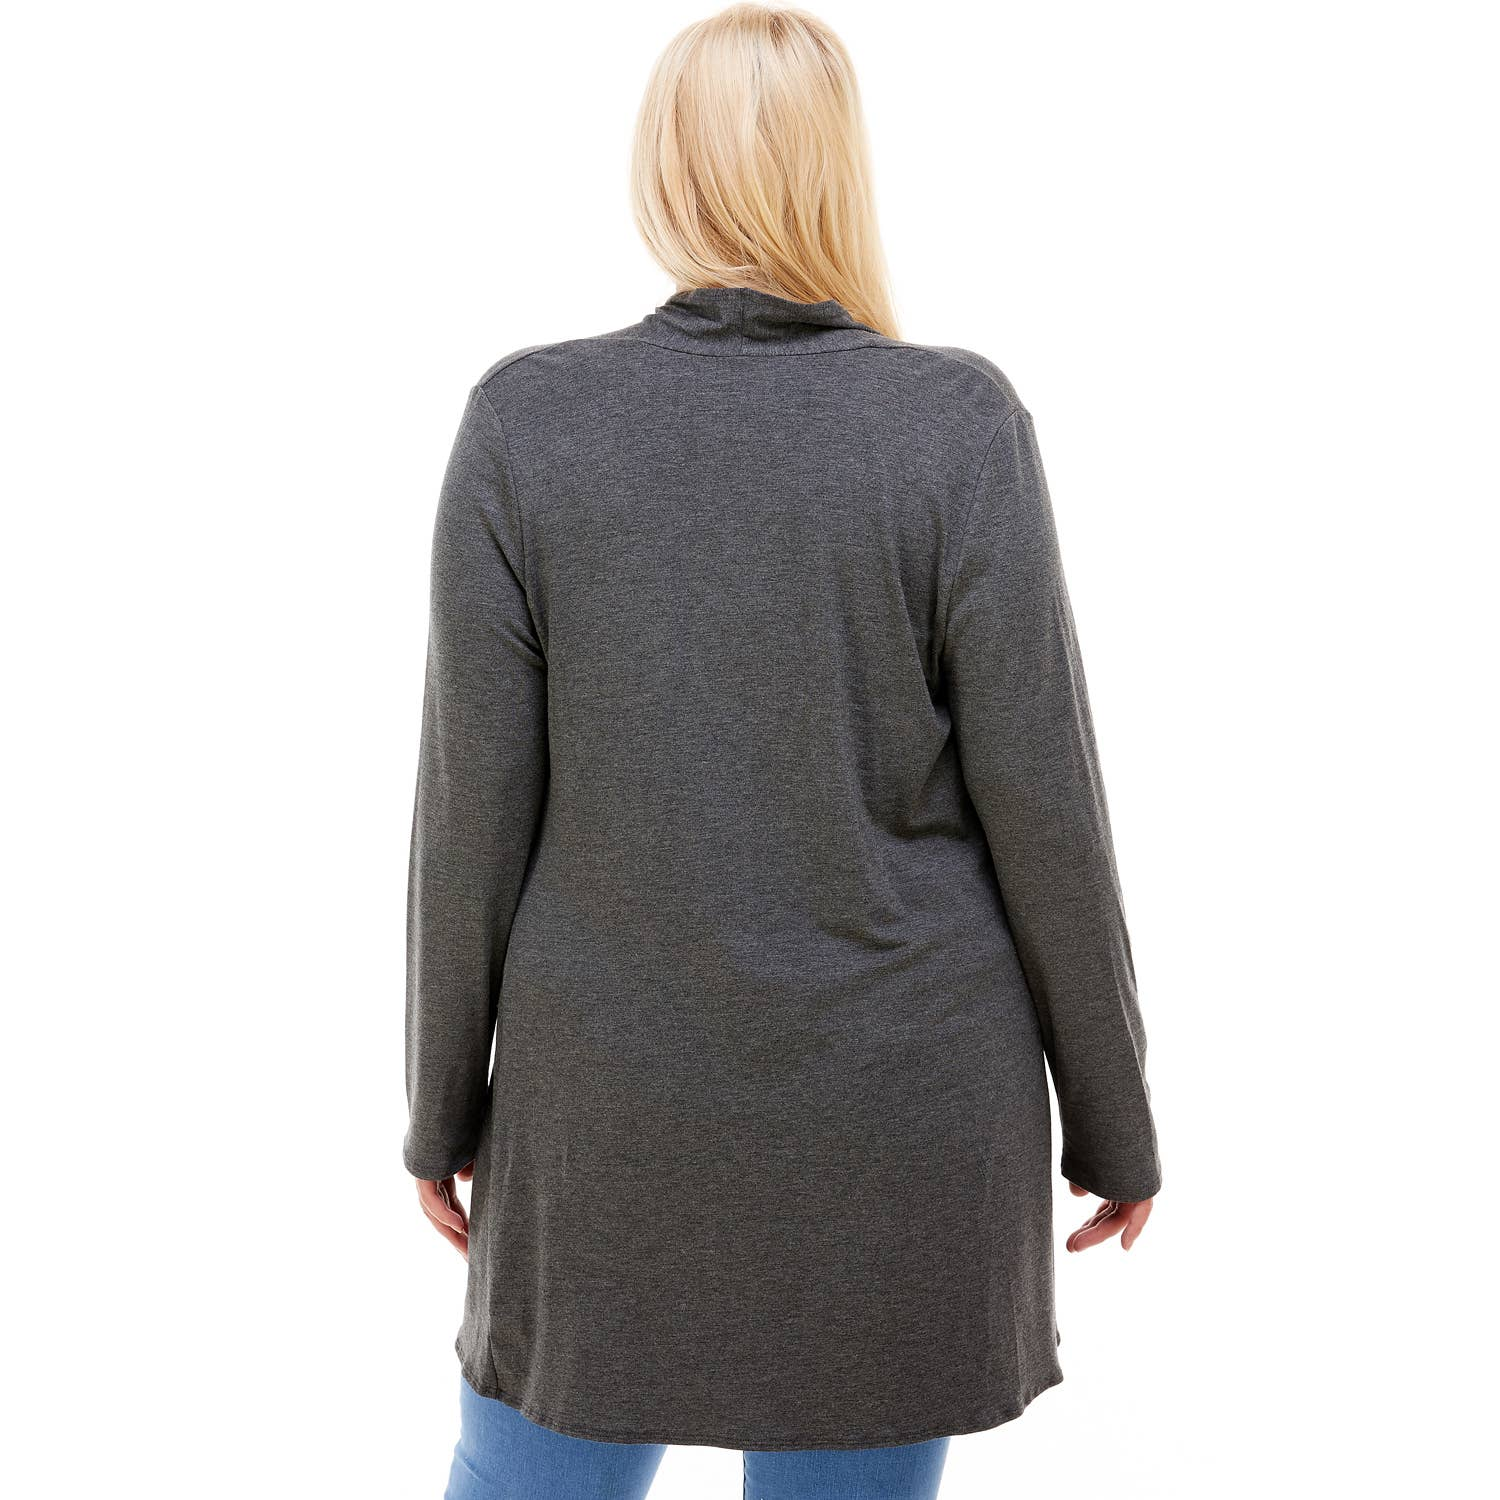 Charcoal Plus Size Cardigan